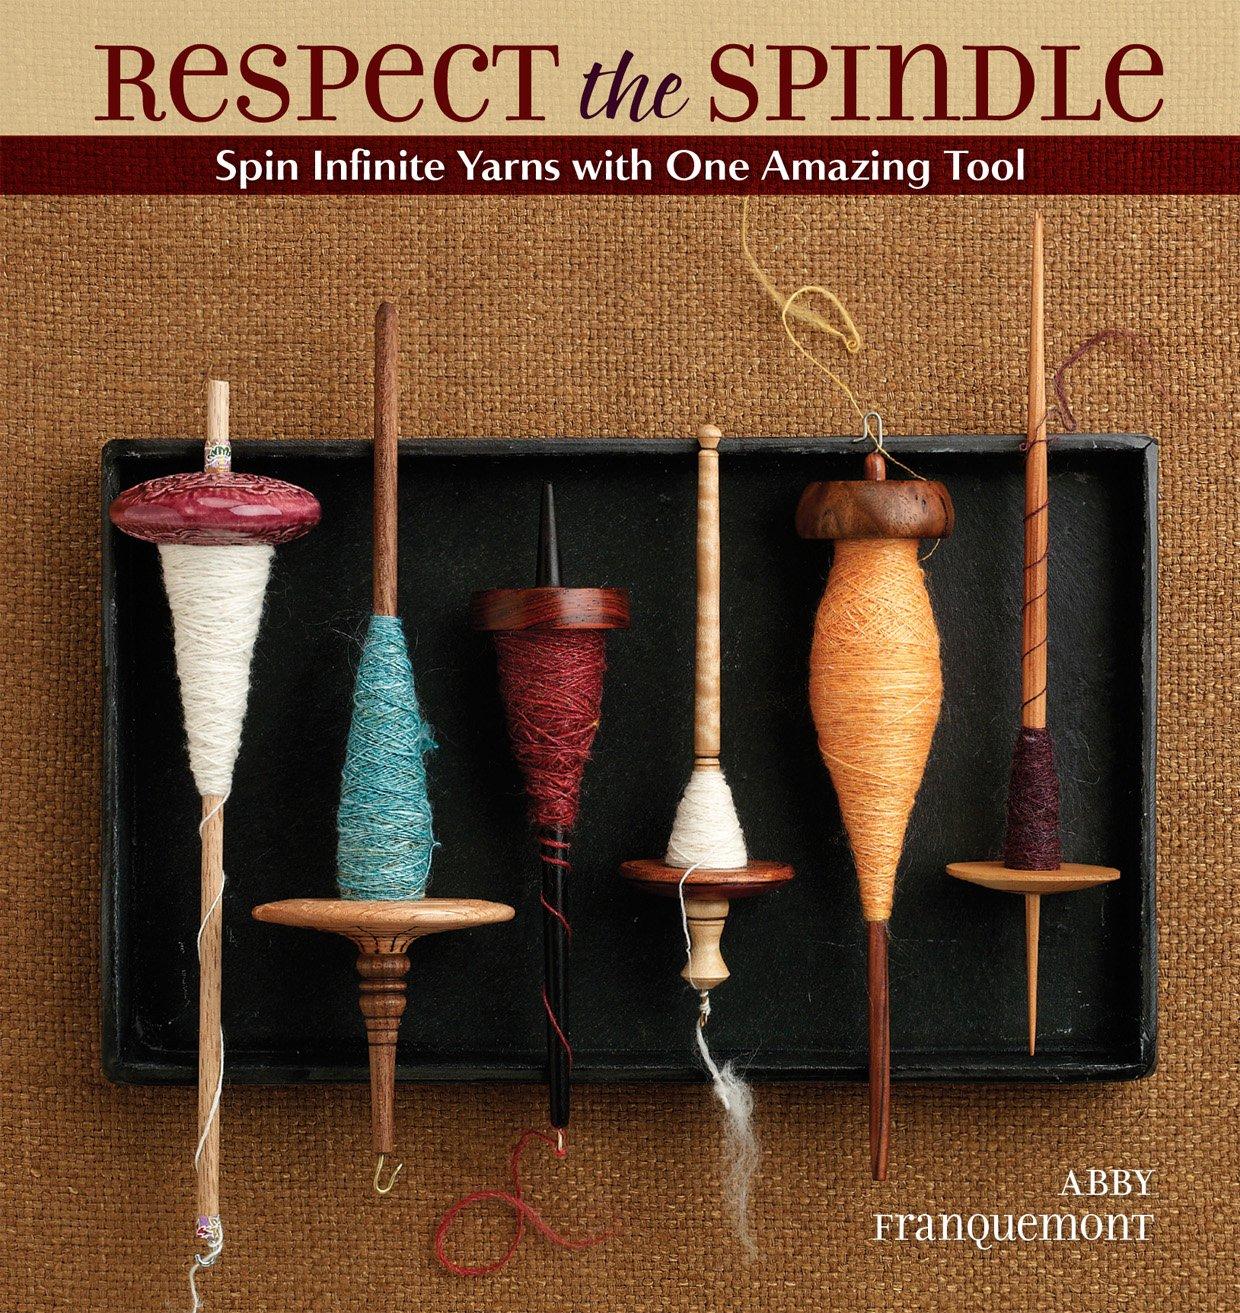 Respect the Spindle: Spin Infinite Yarns with One Amazing Tool ...